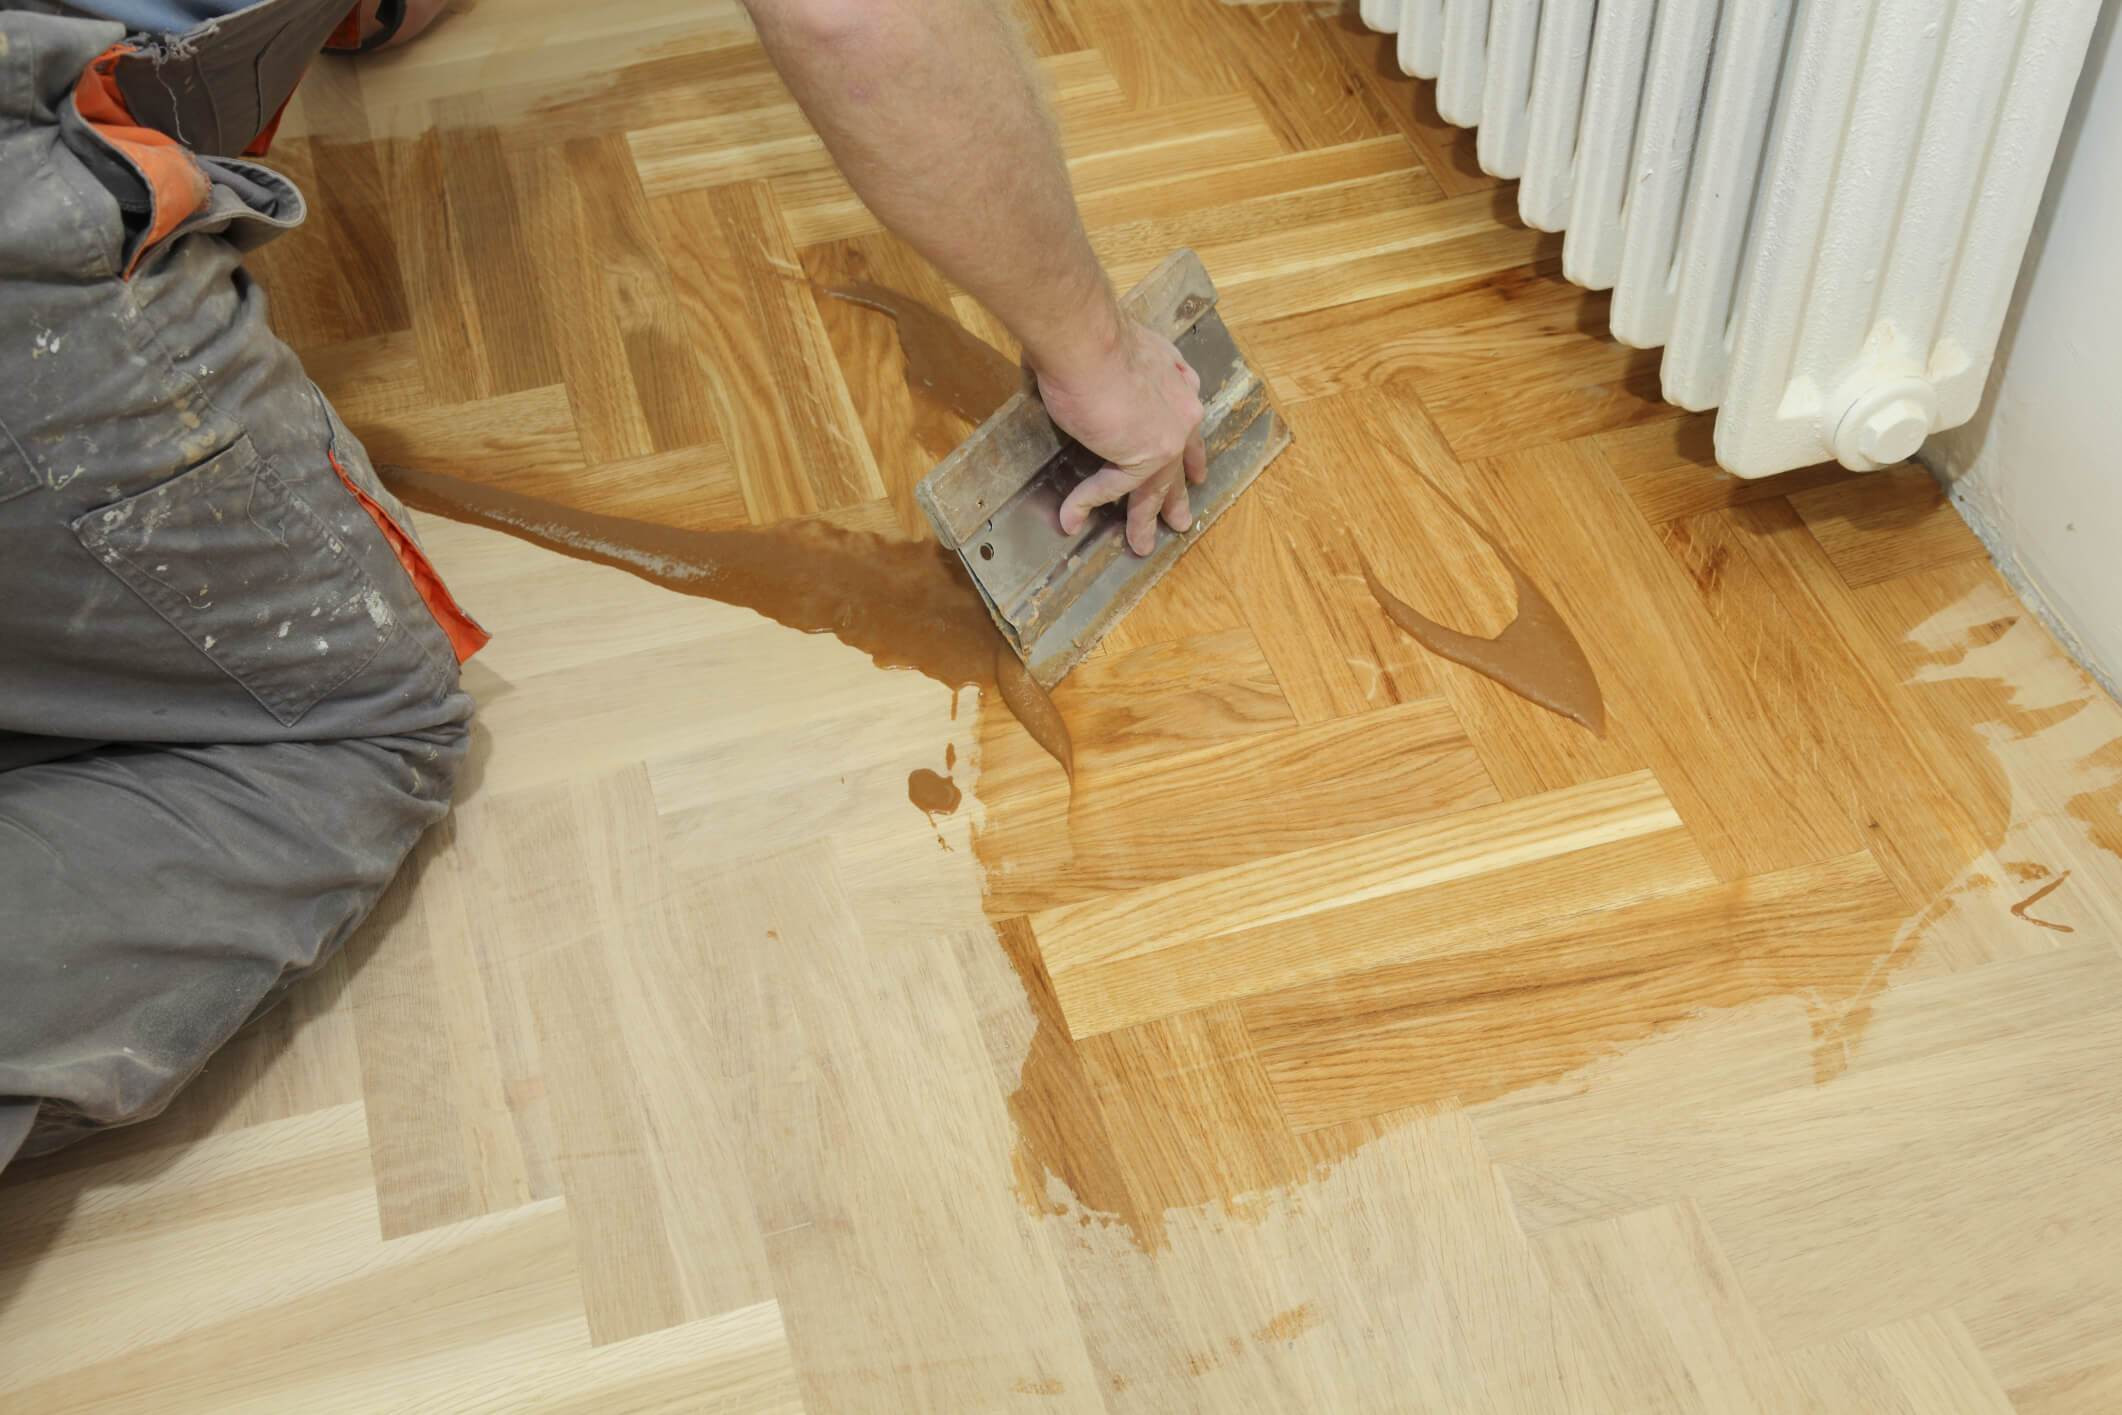 Dj Hardwood Floors Of Hardwood Floor Refinishing Richmond Va Floor Transition Laminate to with Regard to Hardwood Floor Refinishing Richmond Va Hardwood Flooring Professionals that You Can Count